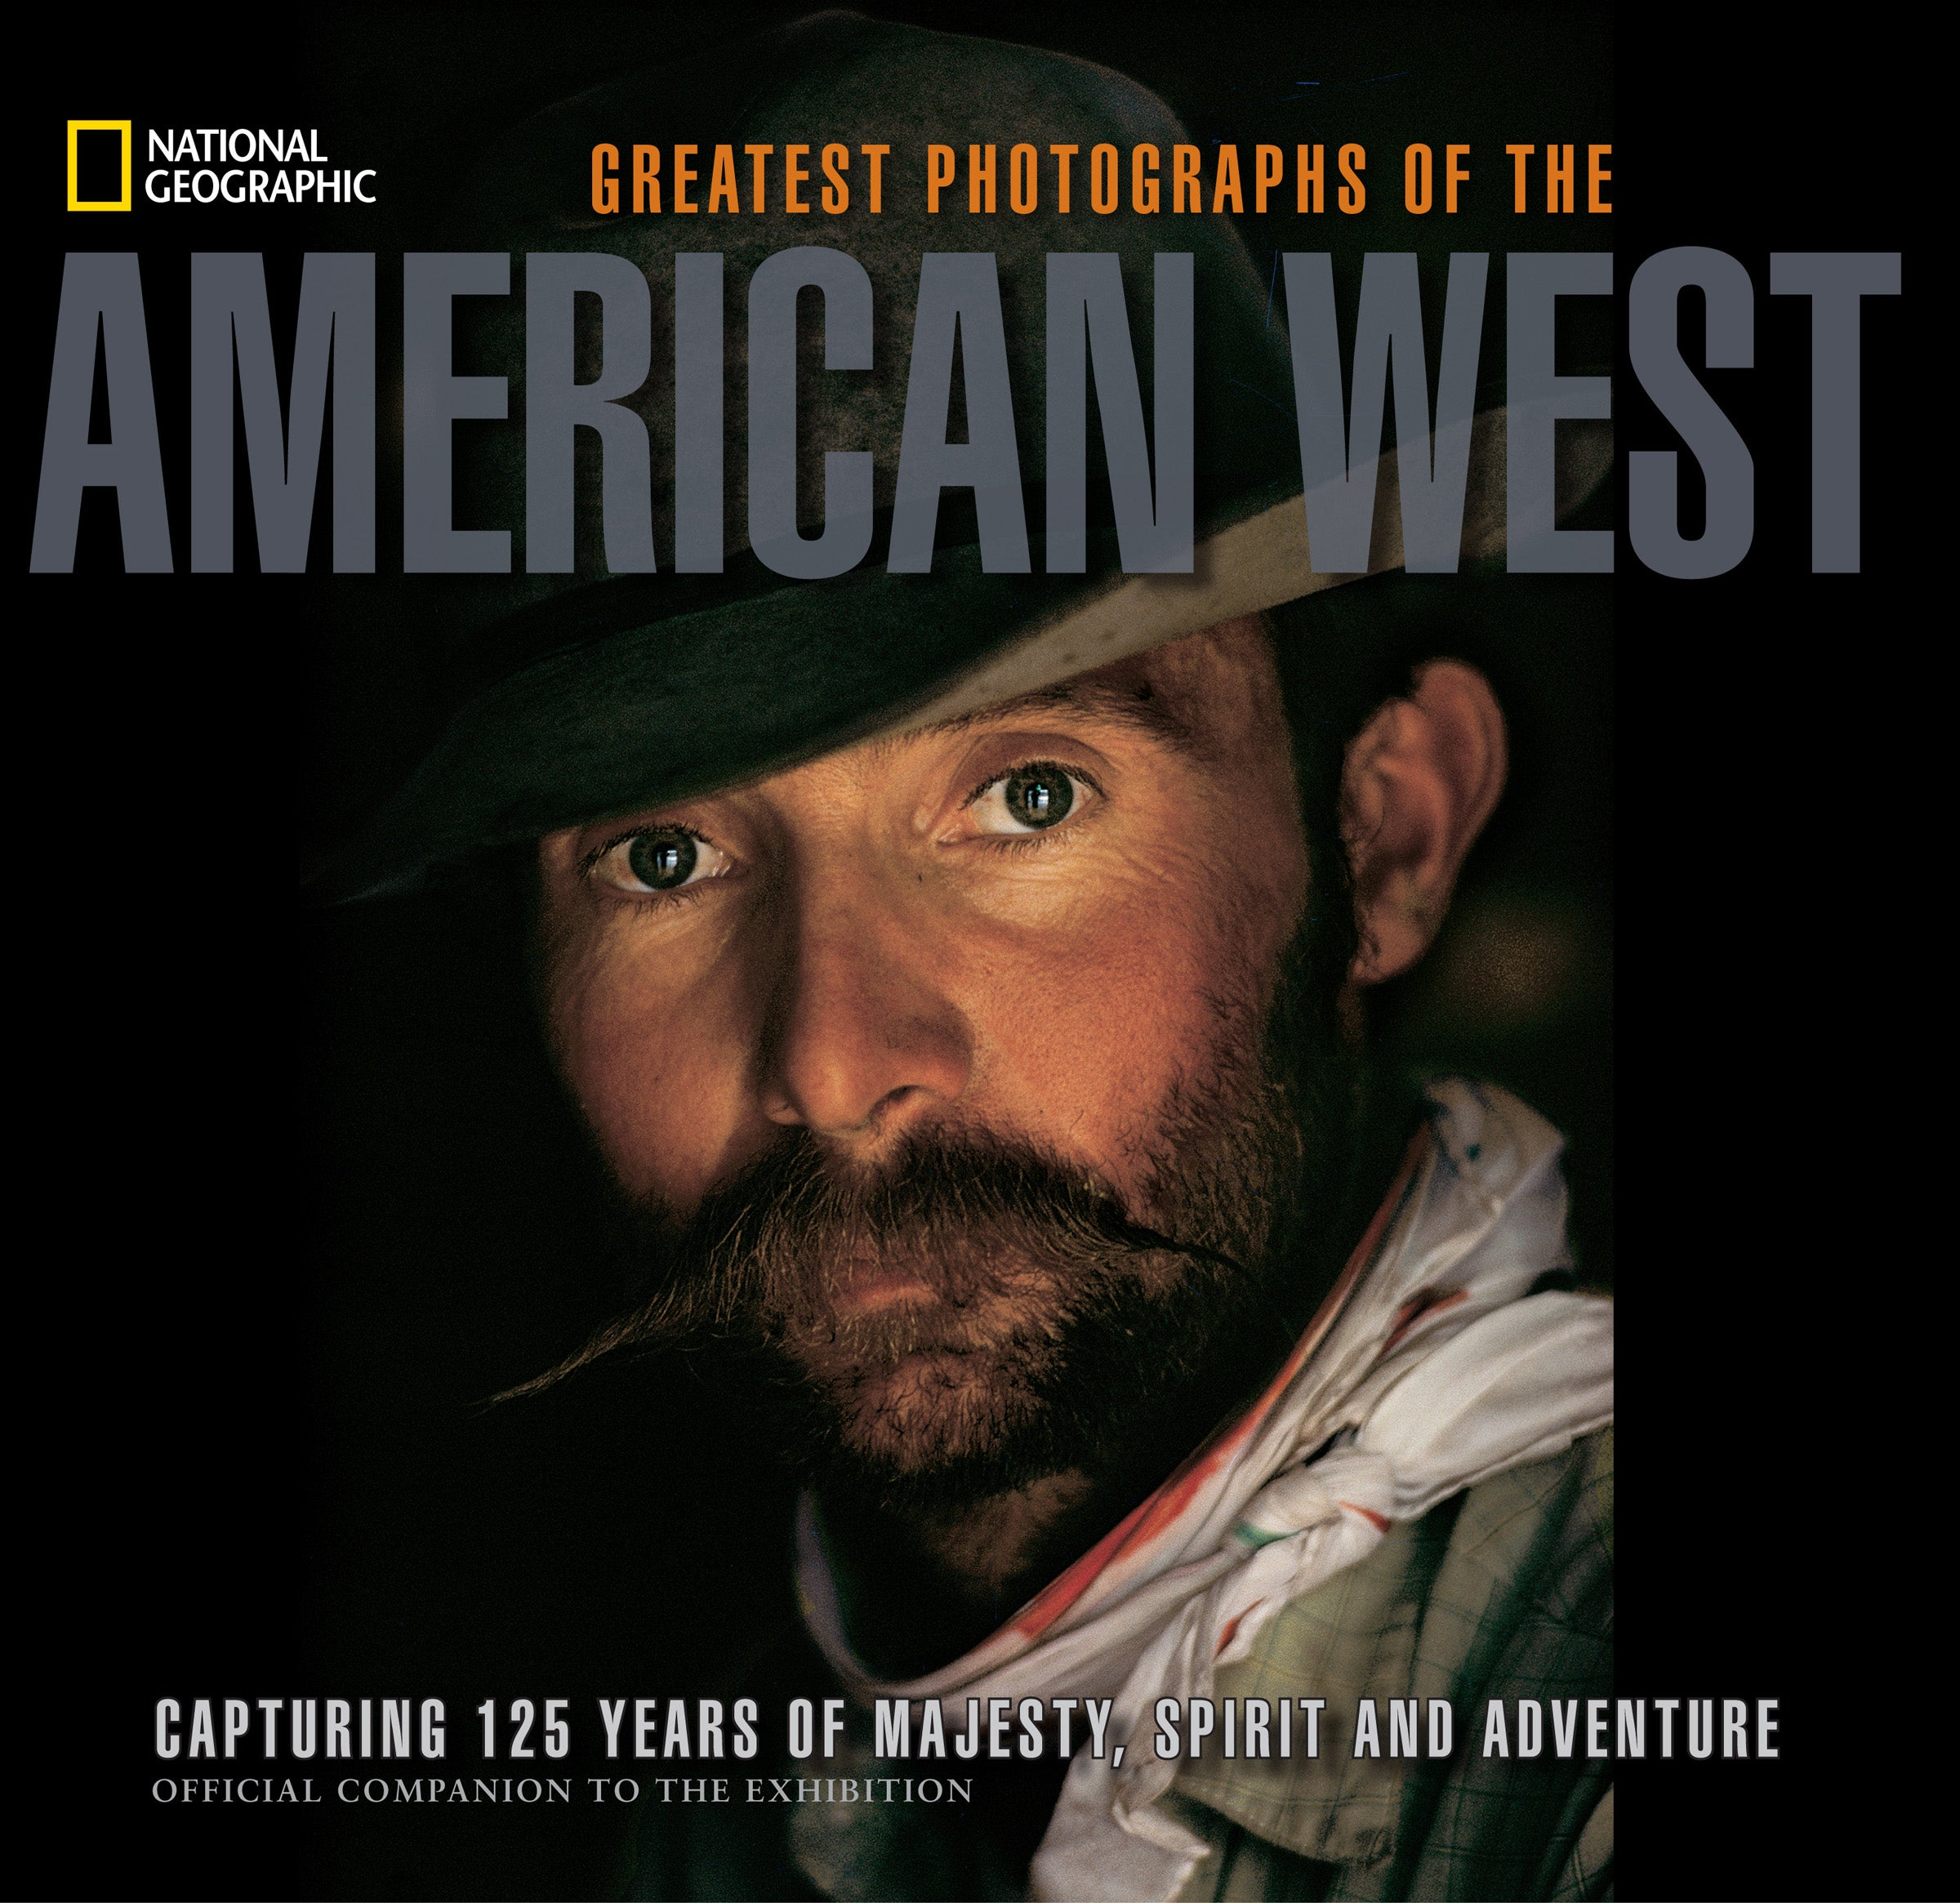 Exclusive Preview: National Geographic's Greatest Photographs of the American West